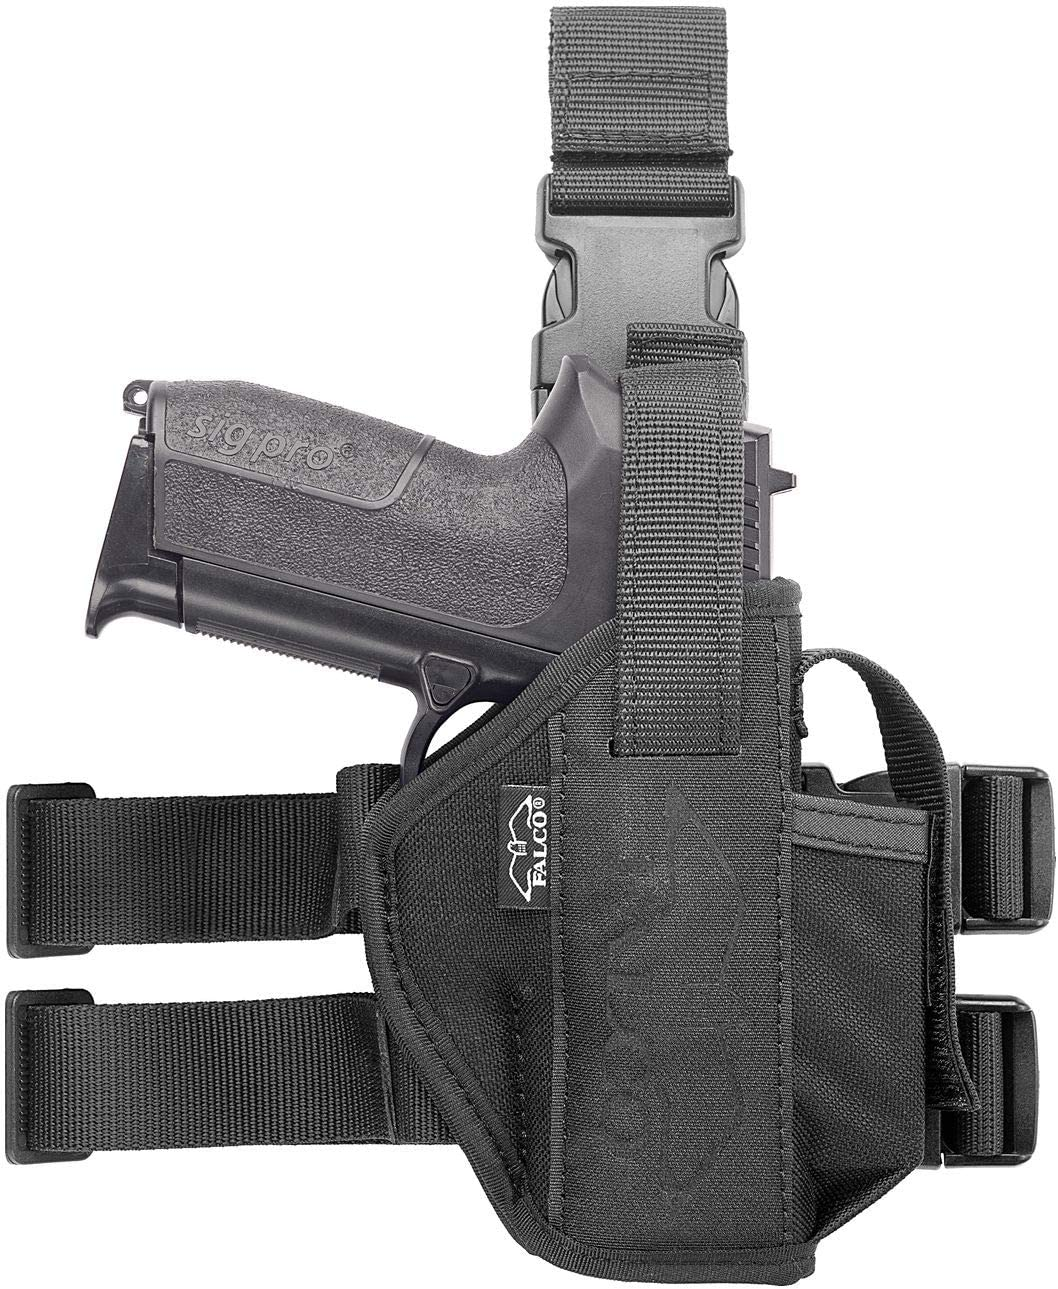 Craft Holsters Cabot Guns The Black Diamond High material Compatible Hols Special price 5